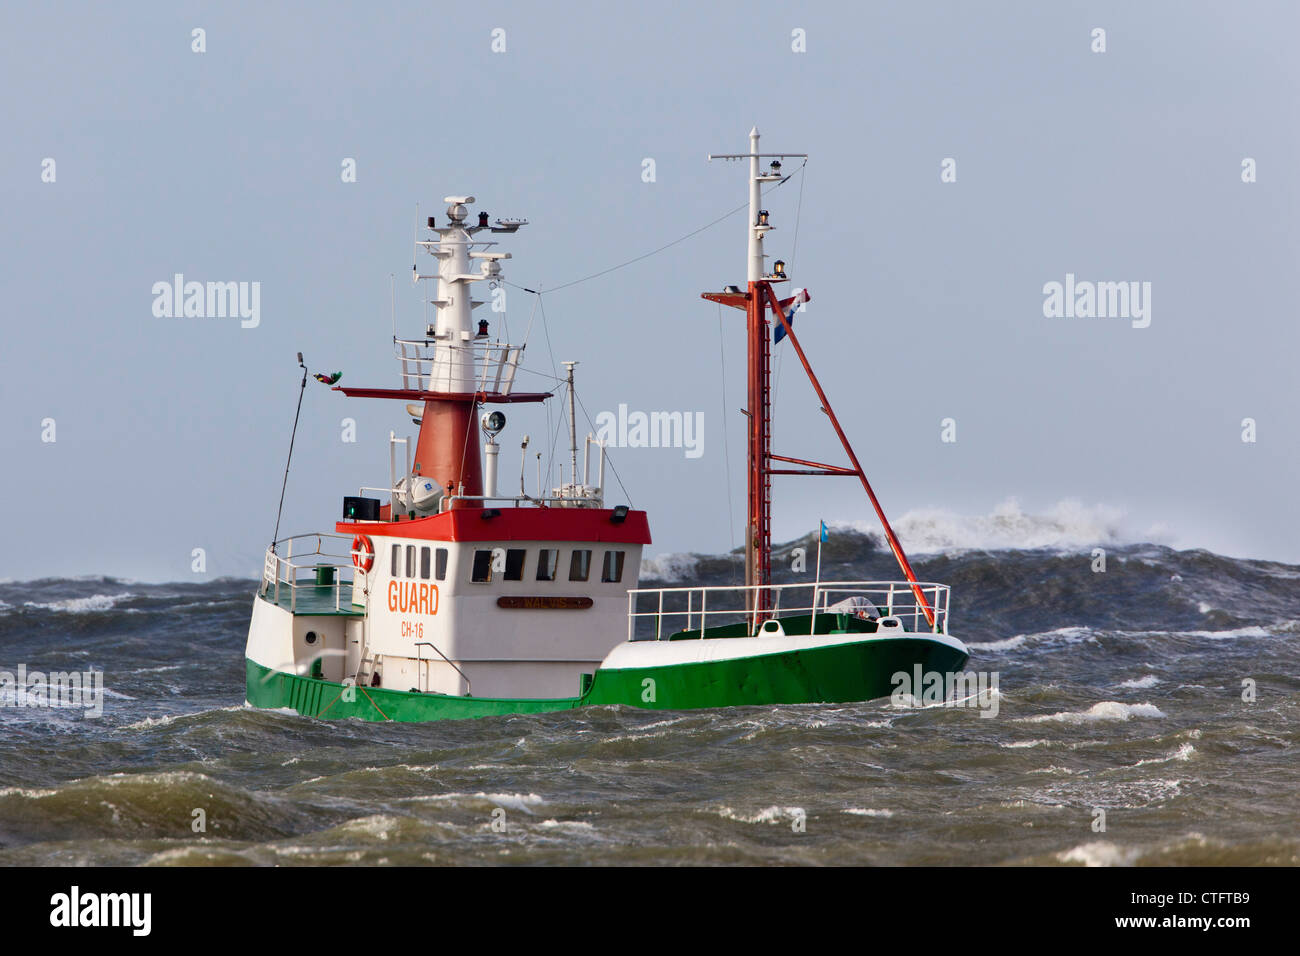 The Netherlands, IJmuiden, Storm. Boat in rough sea. Stock Photo